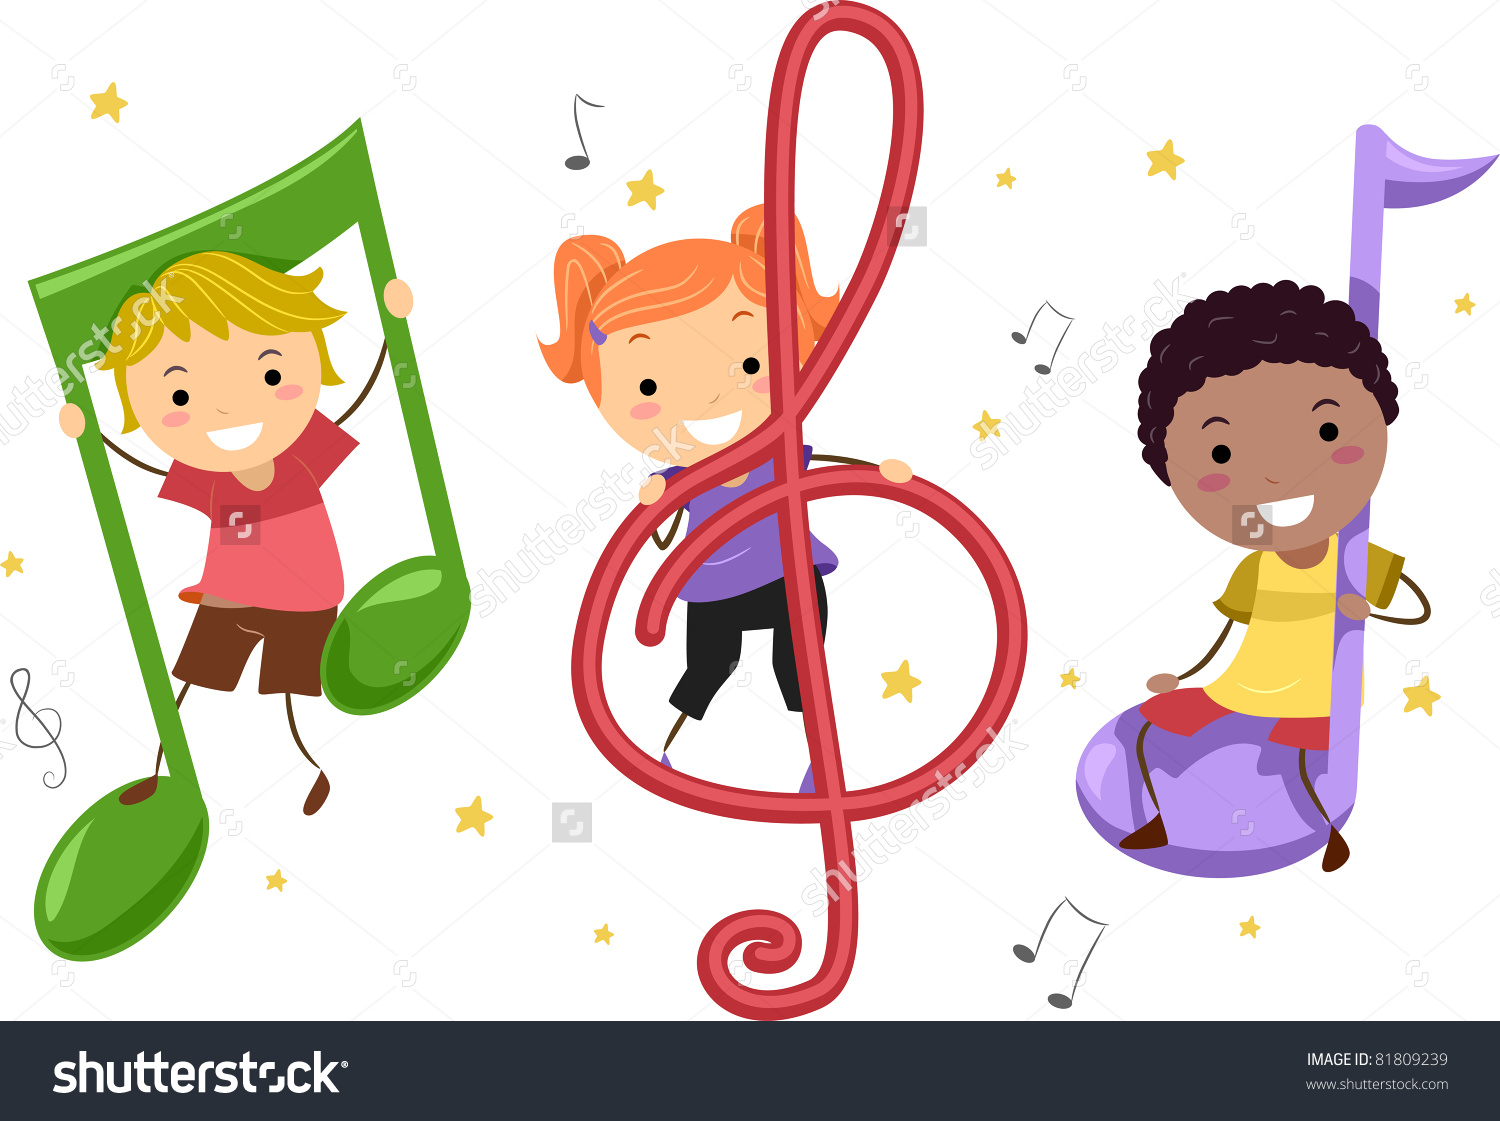 Illustration Kids Playing Musical Notes Stock Vector 81809239.